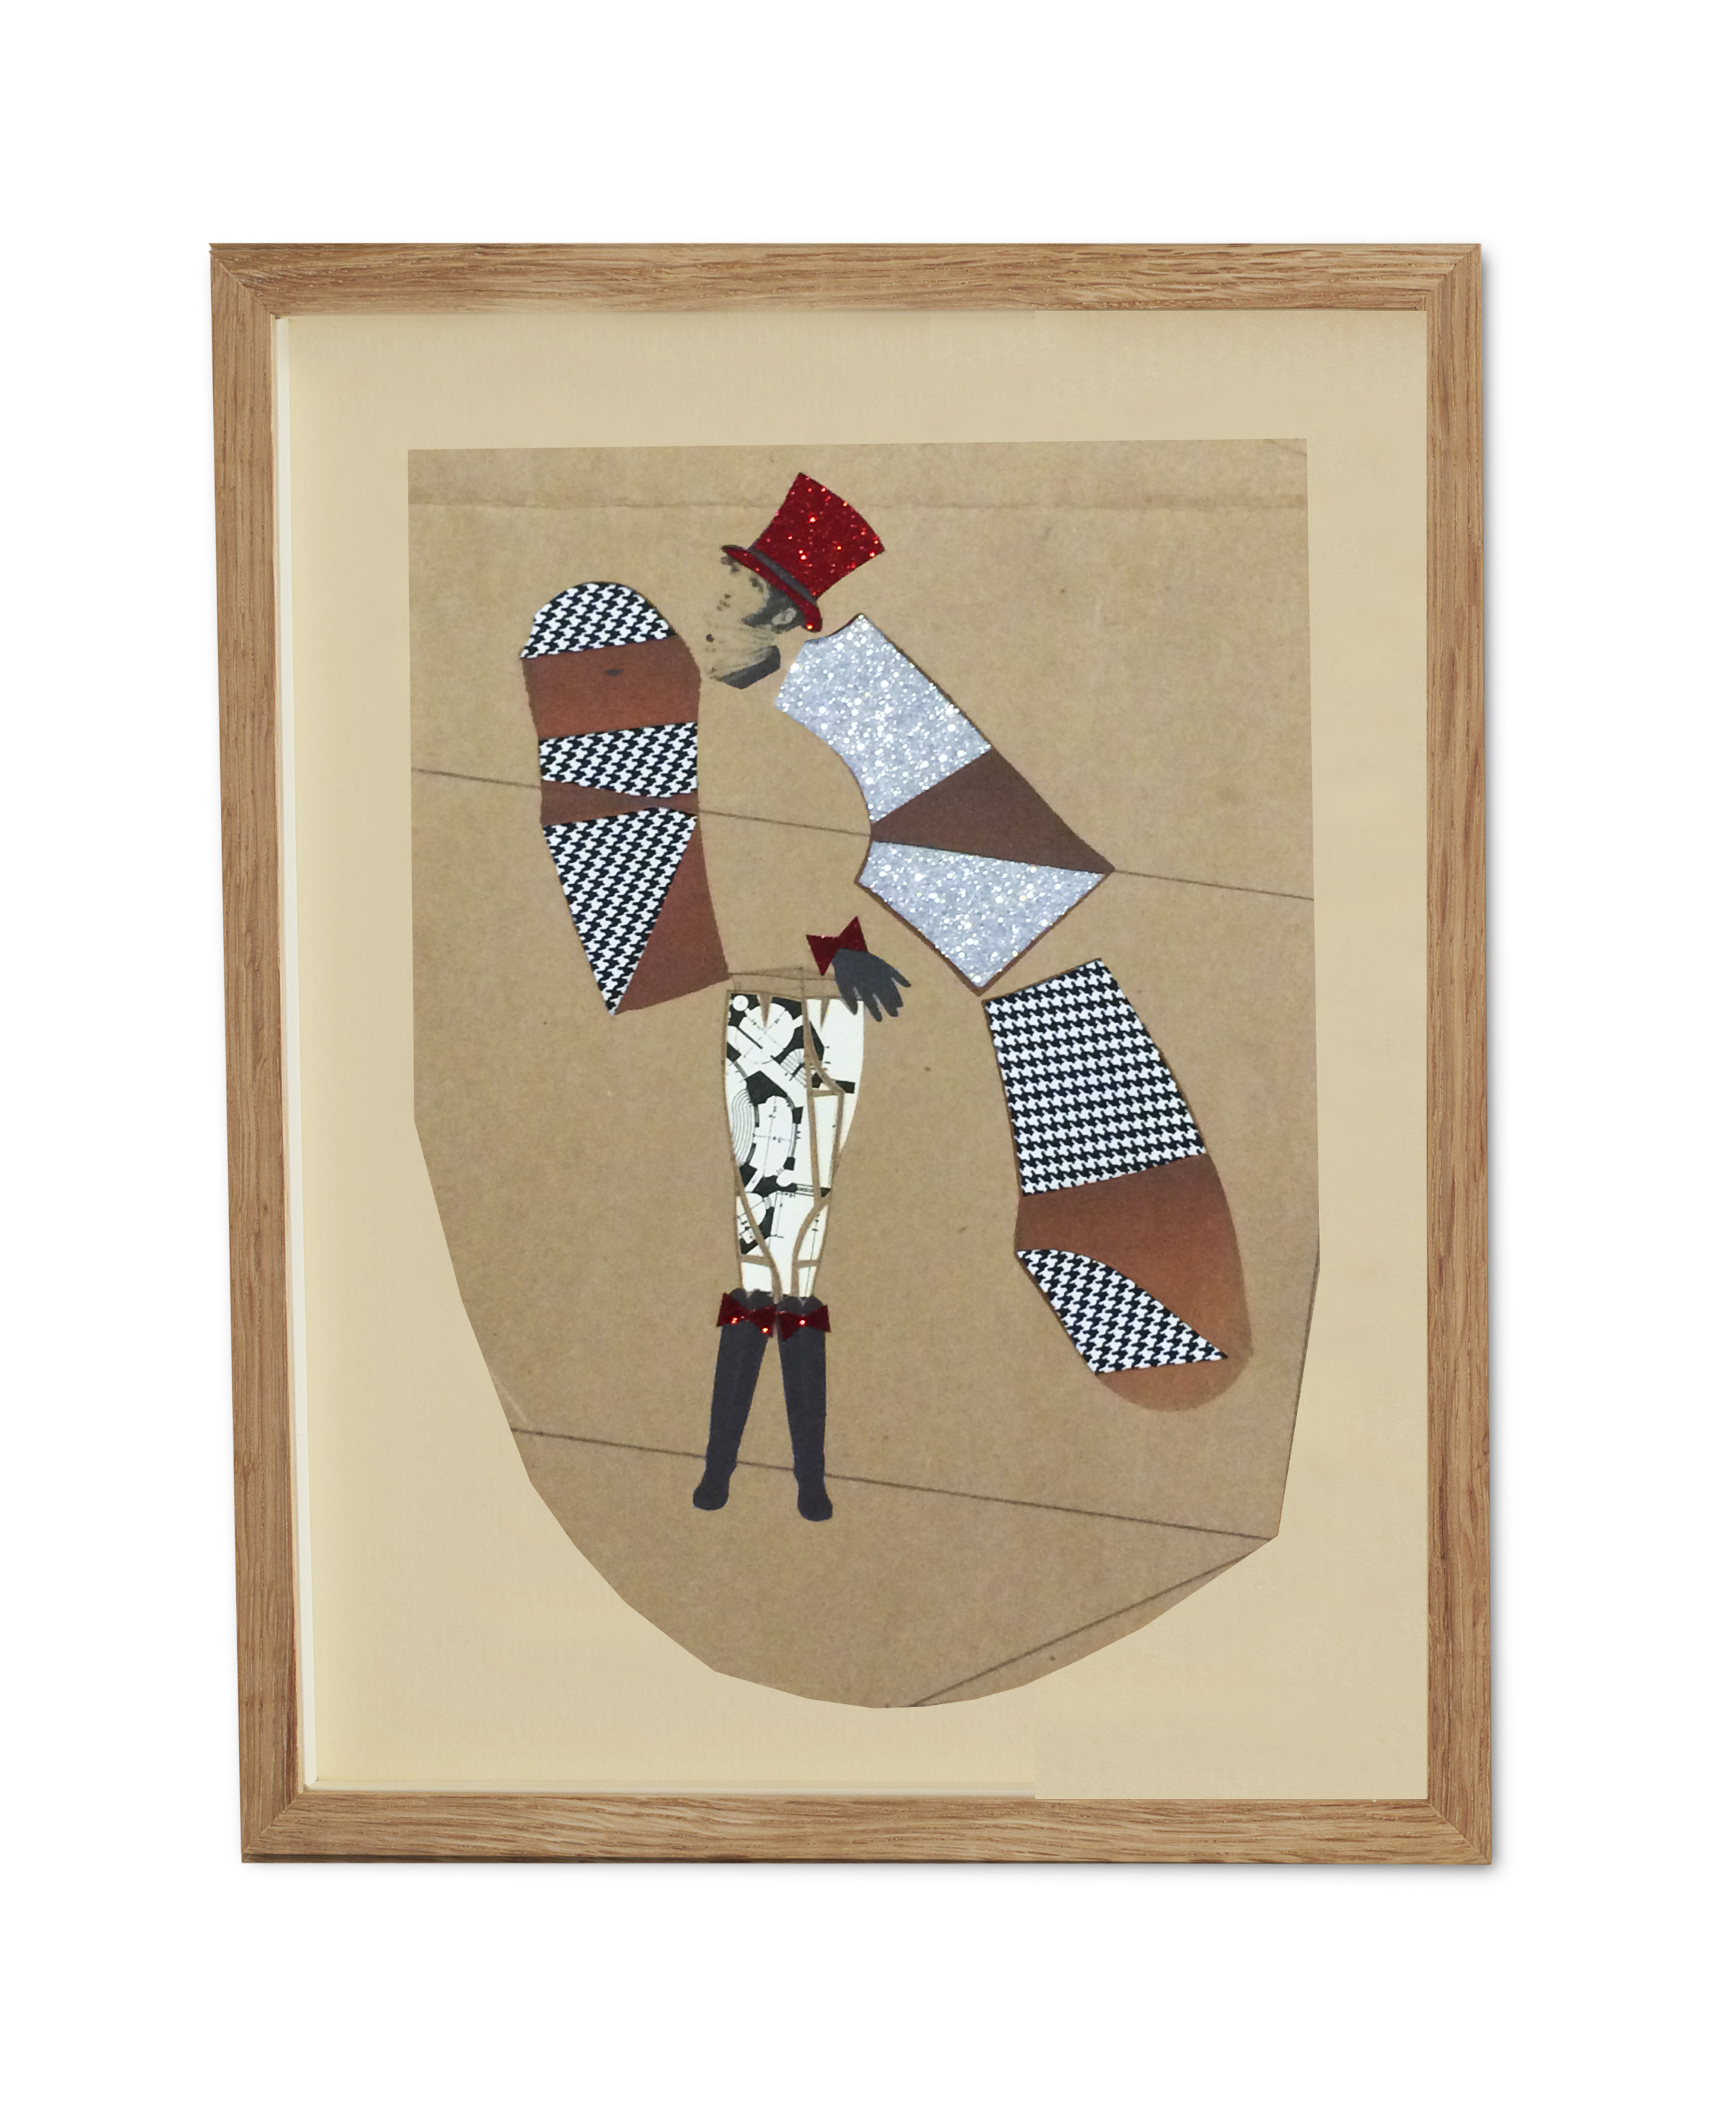 Dogtooth and Silver Glitter Peacock Gentleman ,  2015  38.2 x 29.6 cm (framed) £440